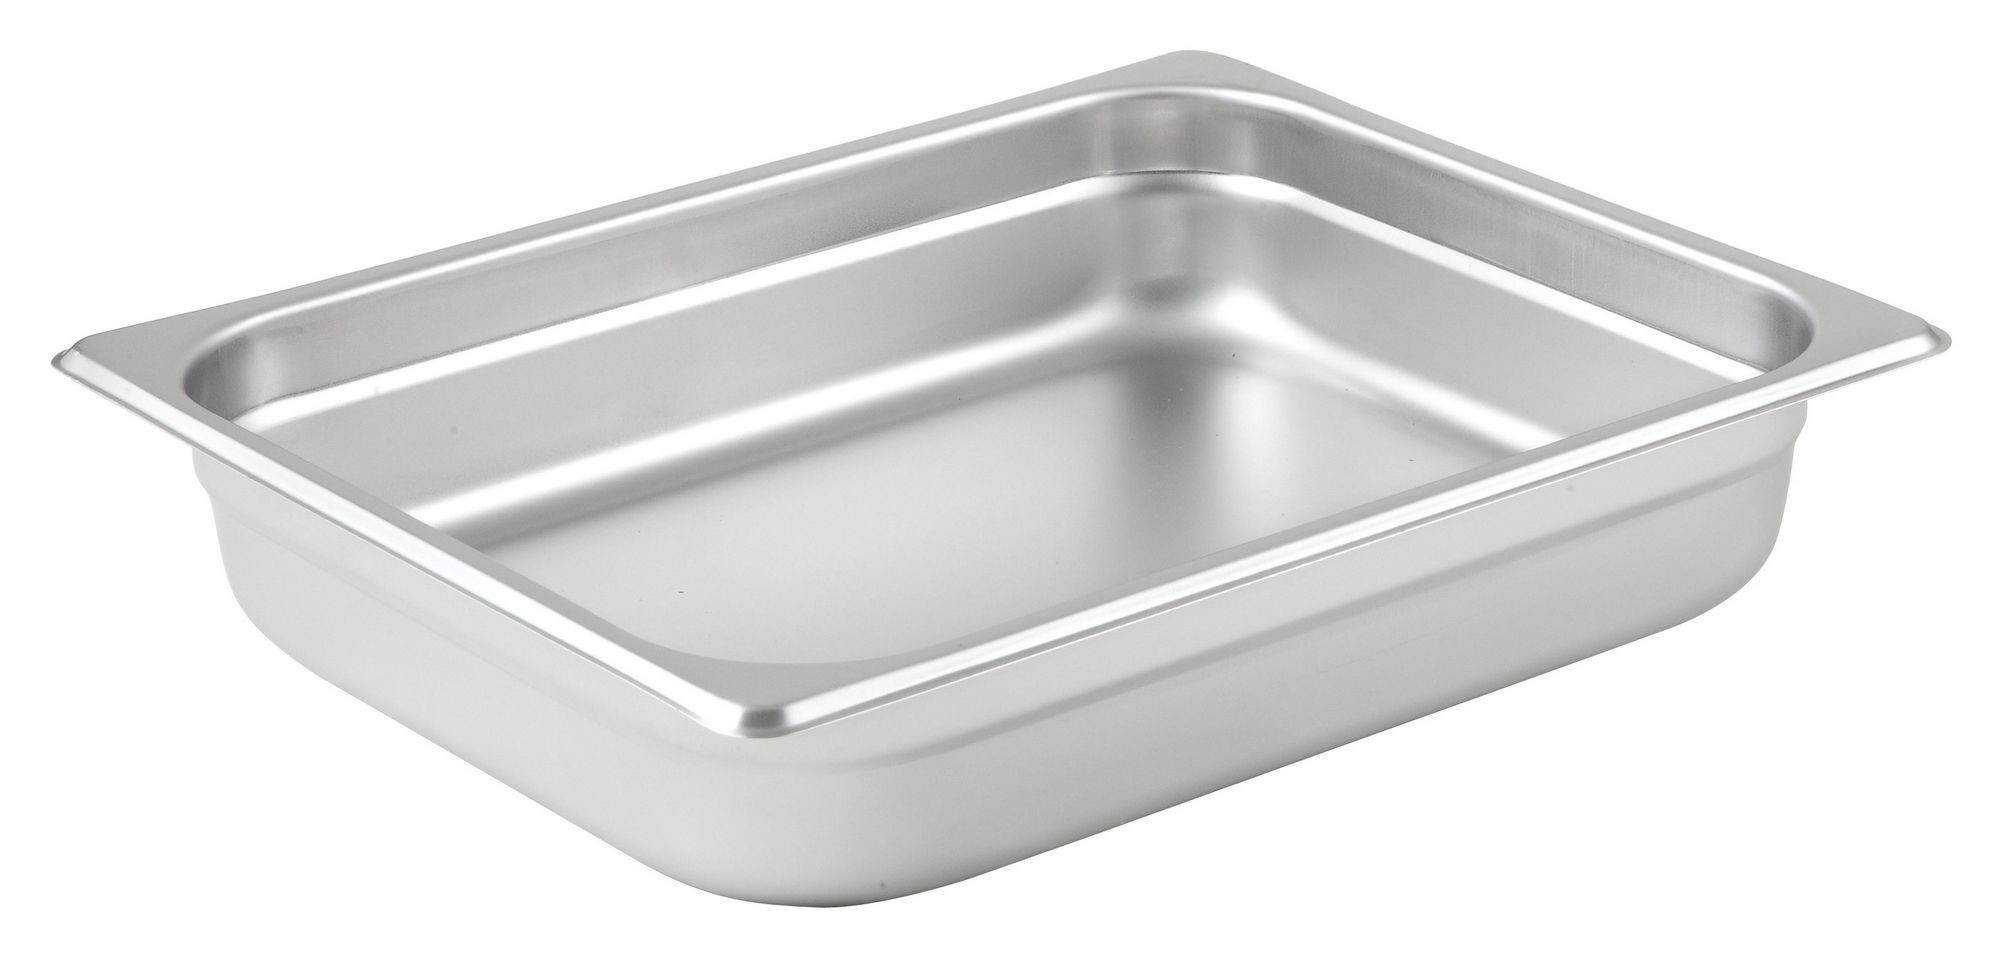 Winco Half Size Anti-Jamming Steam Table Pan (25 Gauge, 2.5